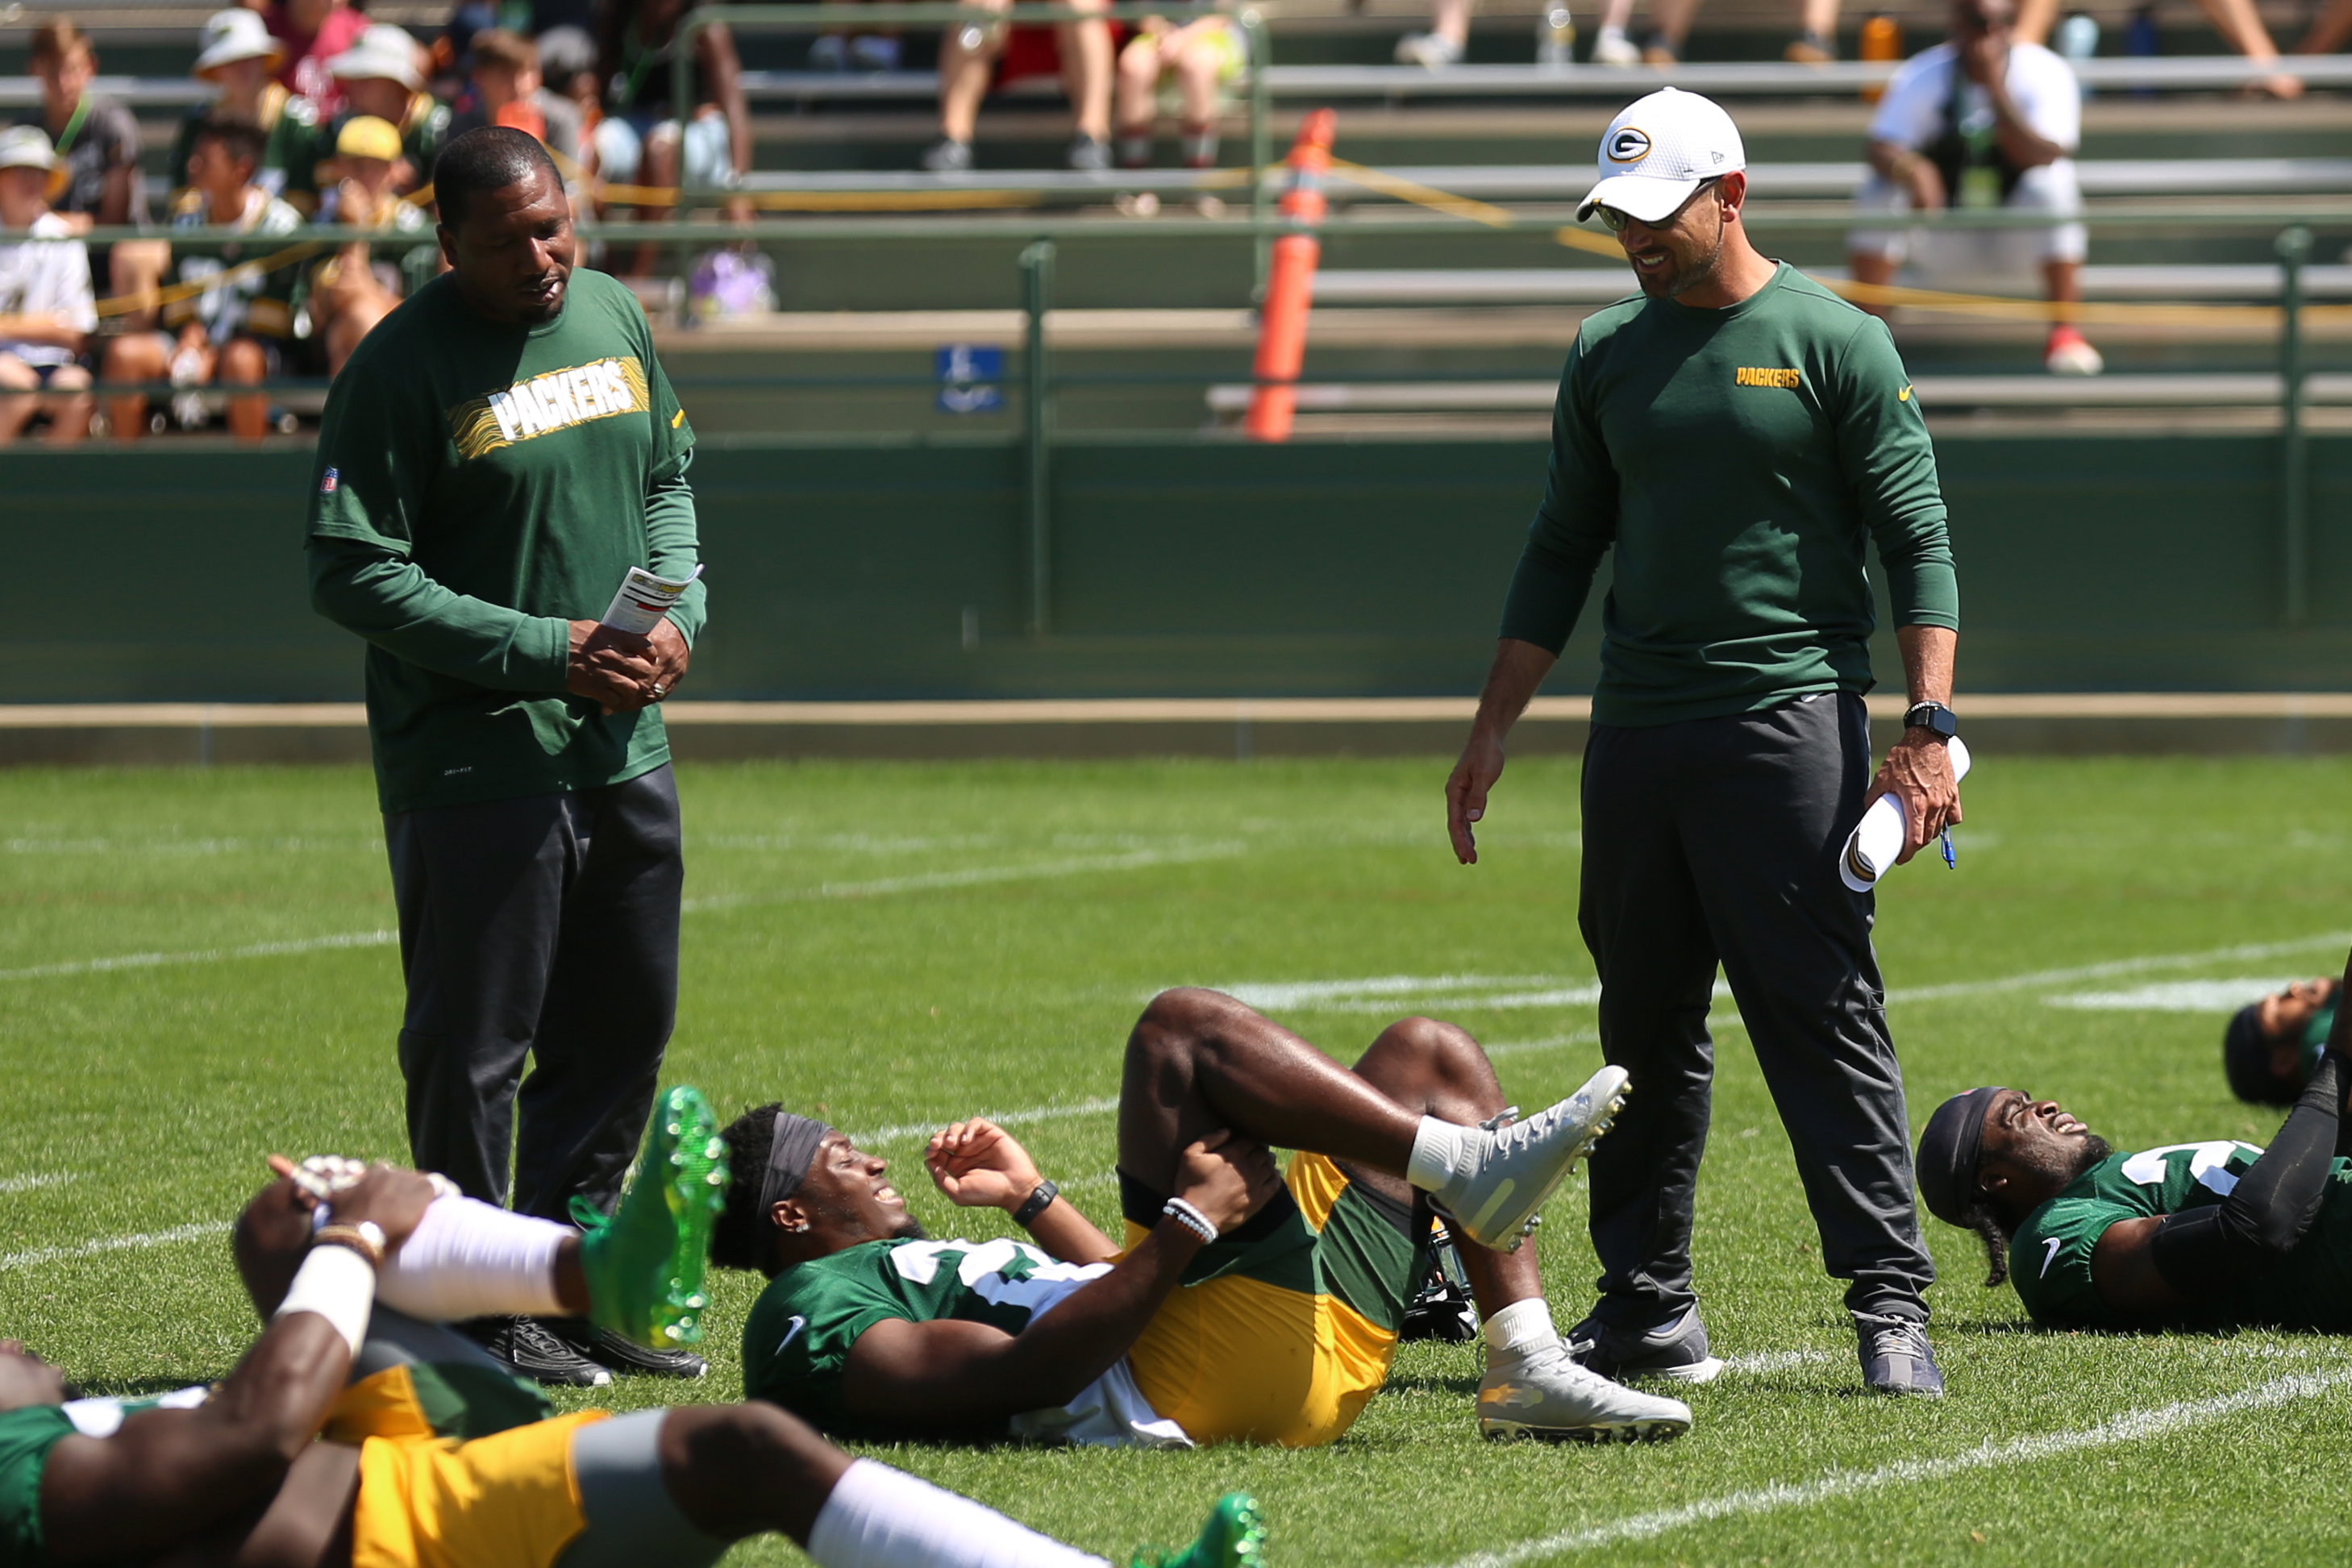 NFL: AUG 19 Packers Training Camp